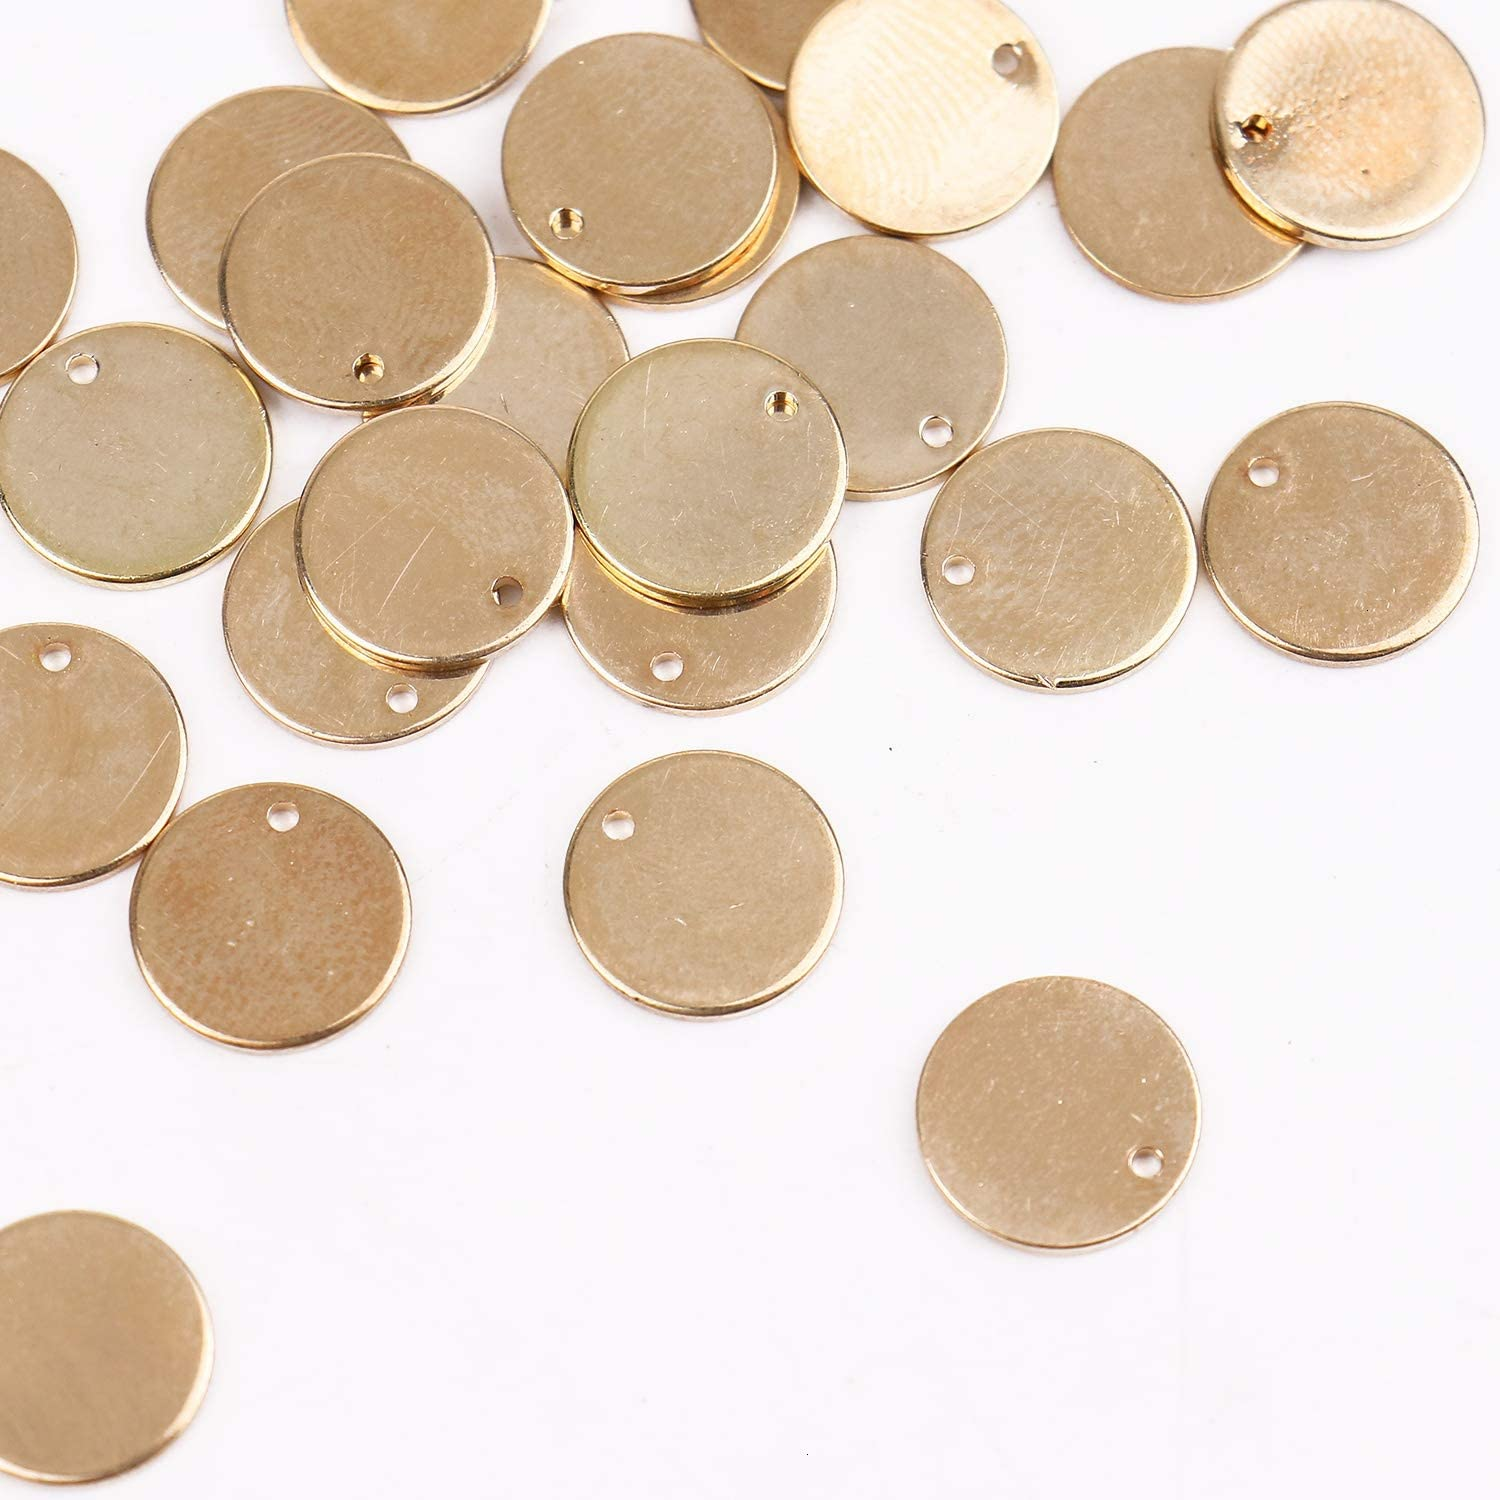 Pomeat 30 Pcs 12mm Small Circle Brass Stamping Blank Tags Pendant with Hole for Jewelry Making,Gold Color